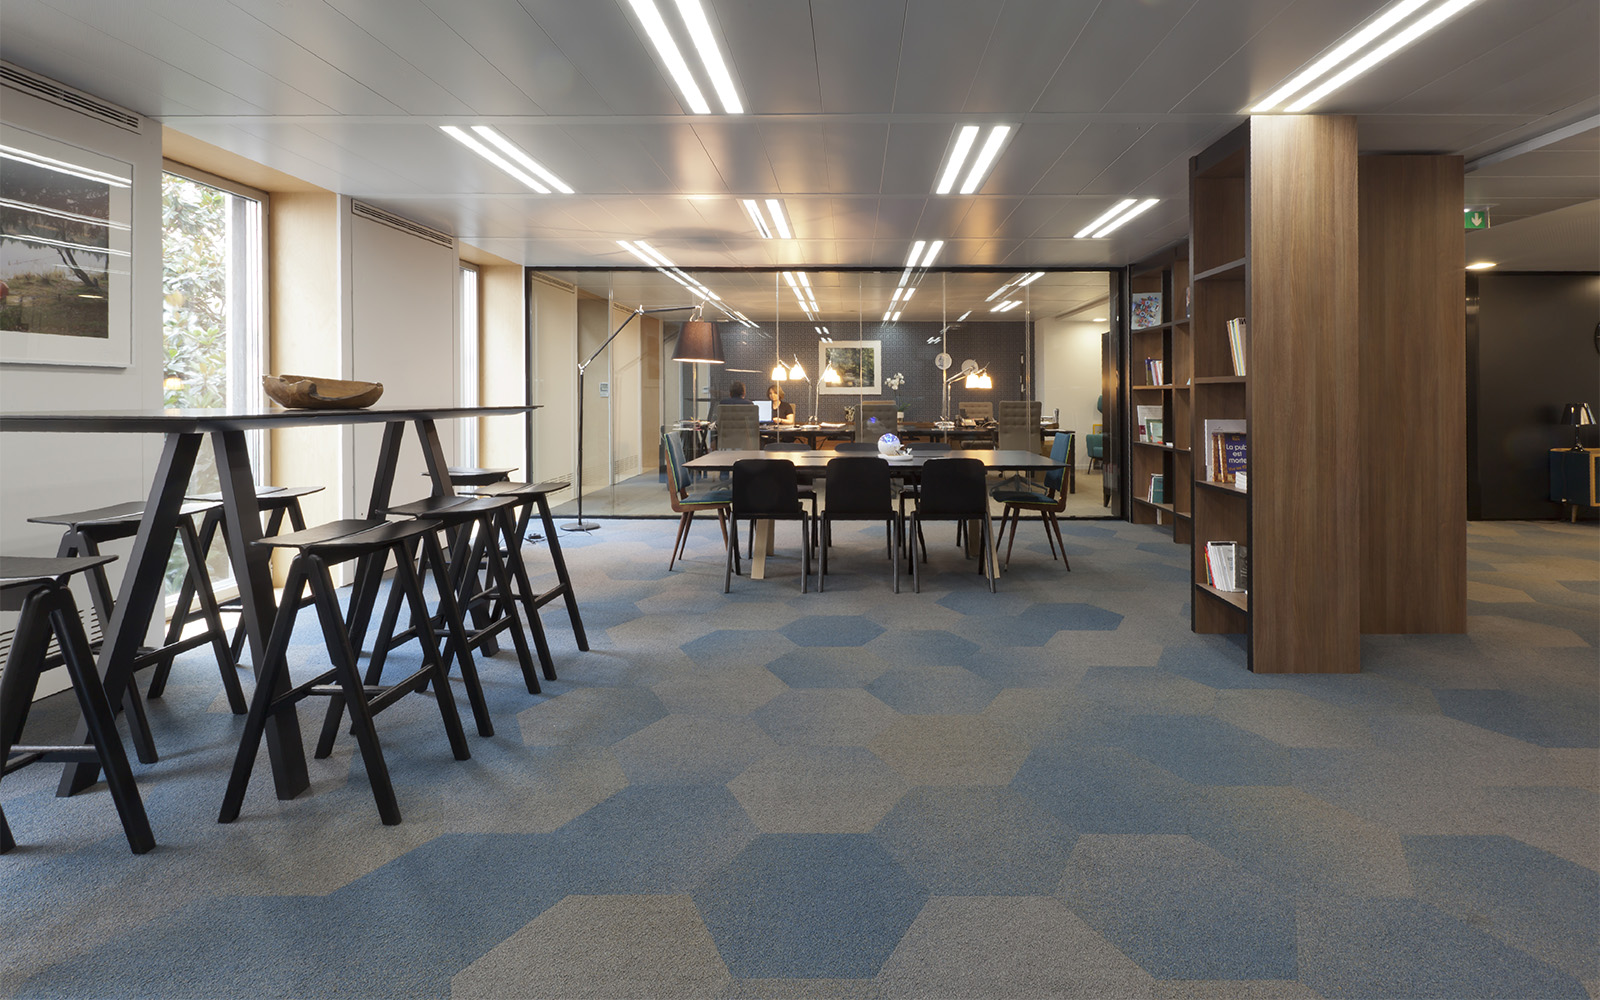 hexagon-shaped blue and beige carpet tiles by ege